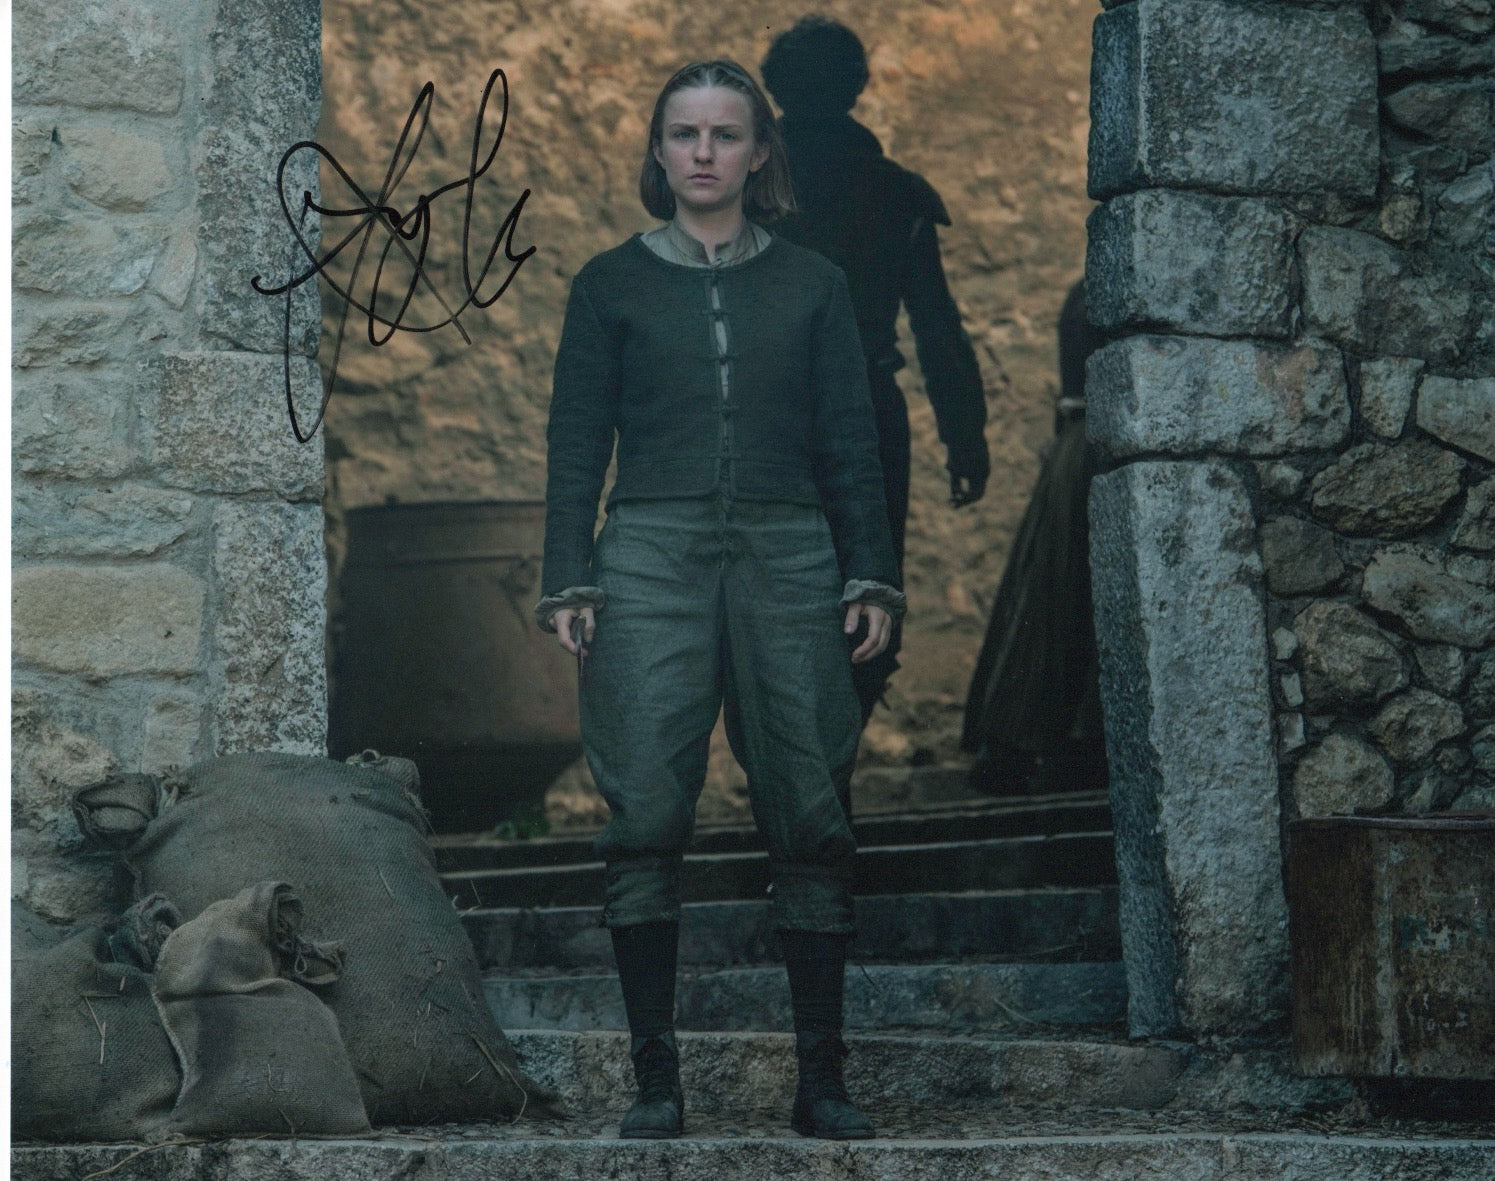 Faye Marsey Game of Thrones Signed Autograph 8x10 Photo